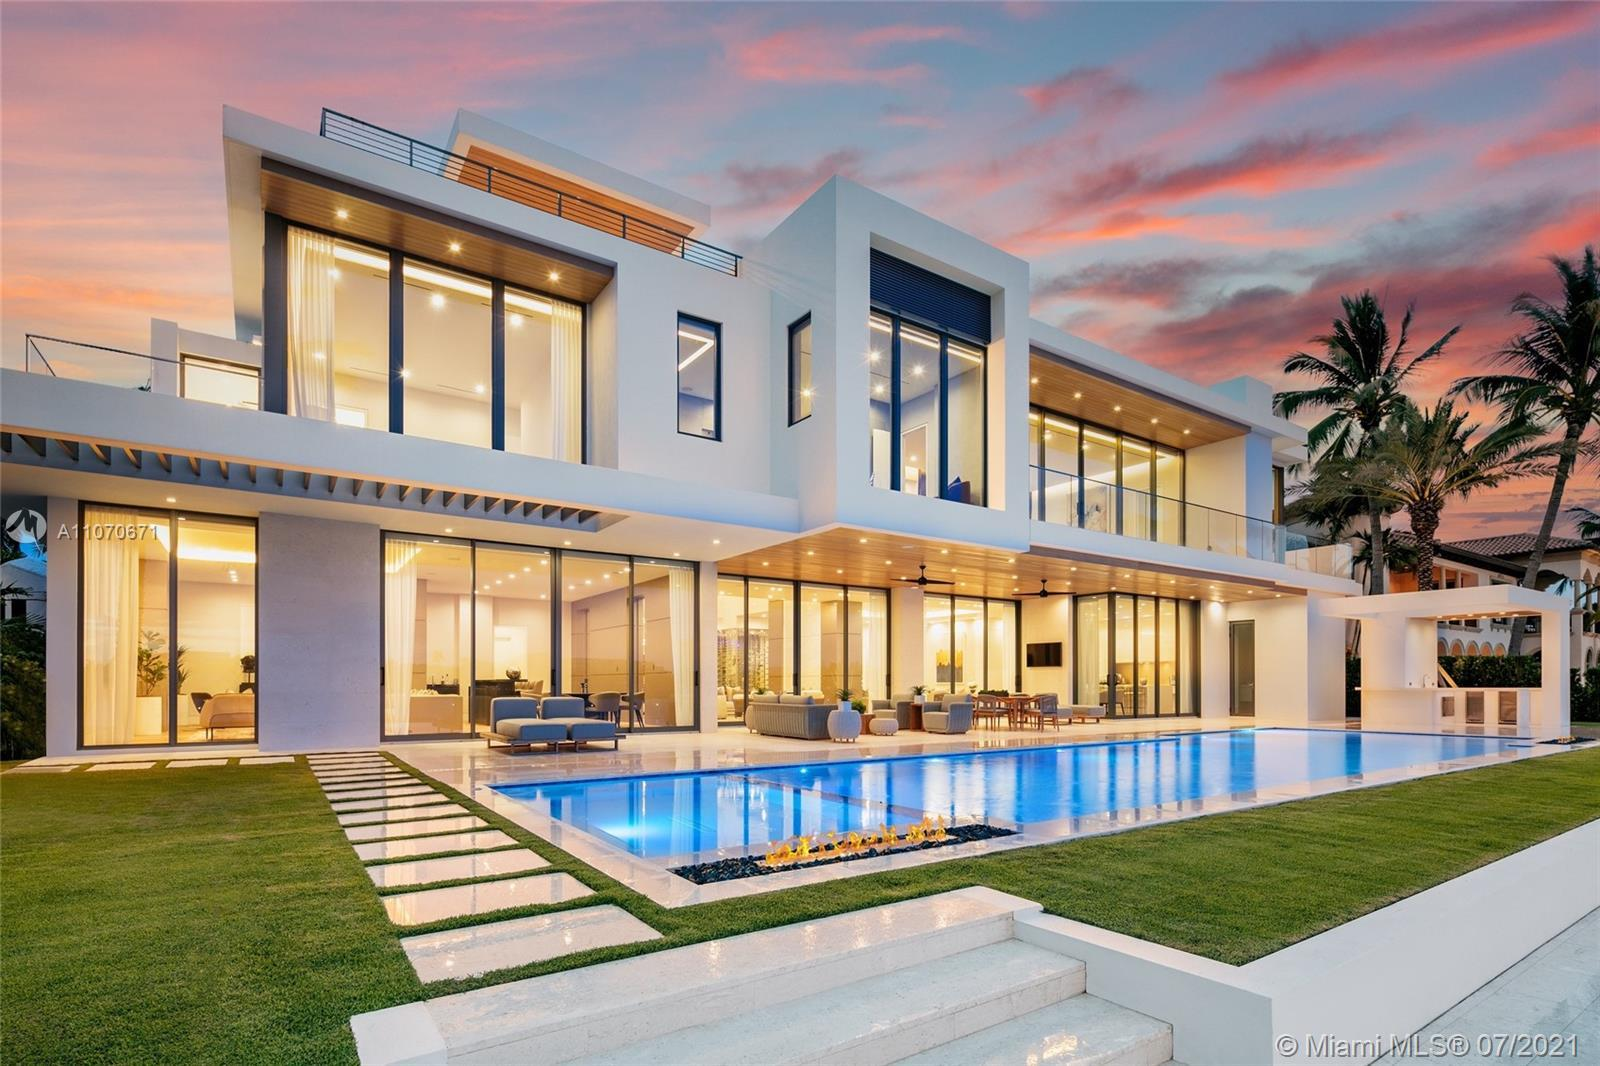 This stunning modern masterpiece boasts 6 beds, 7 full baths & 2 half baths in the highly sought aft